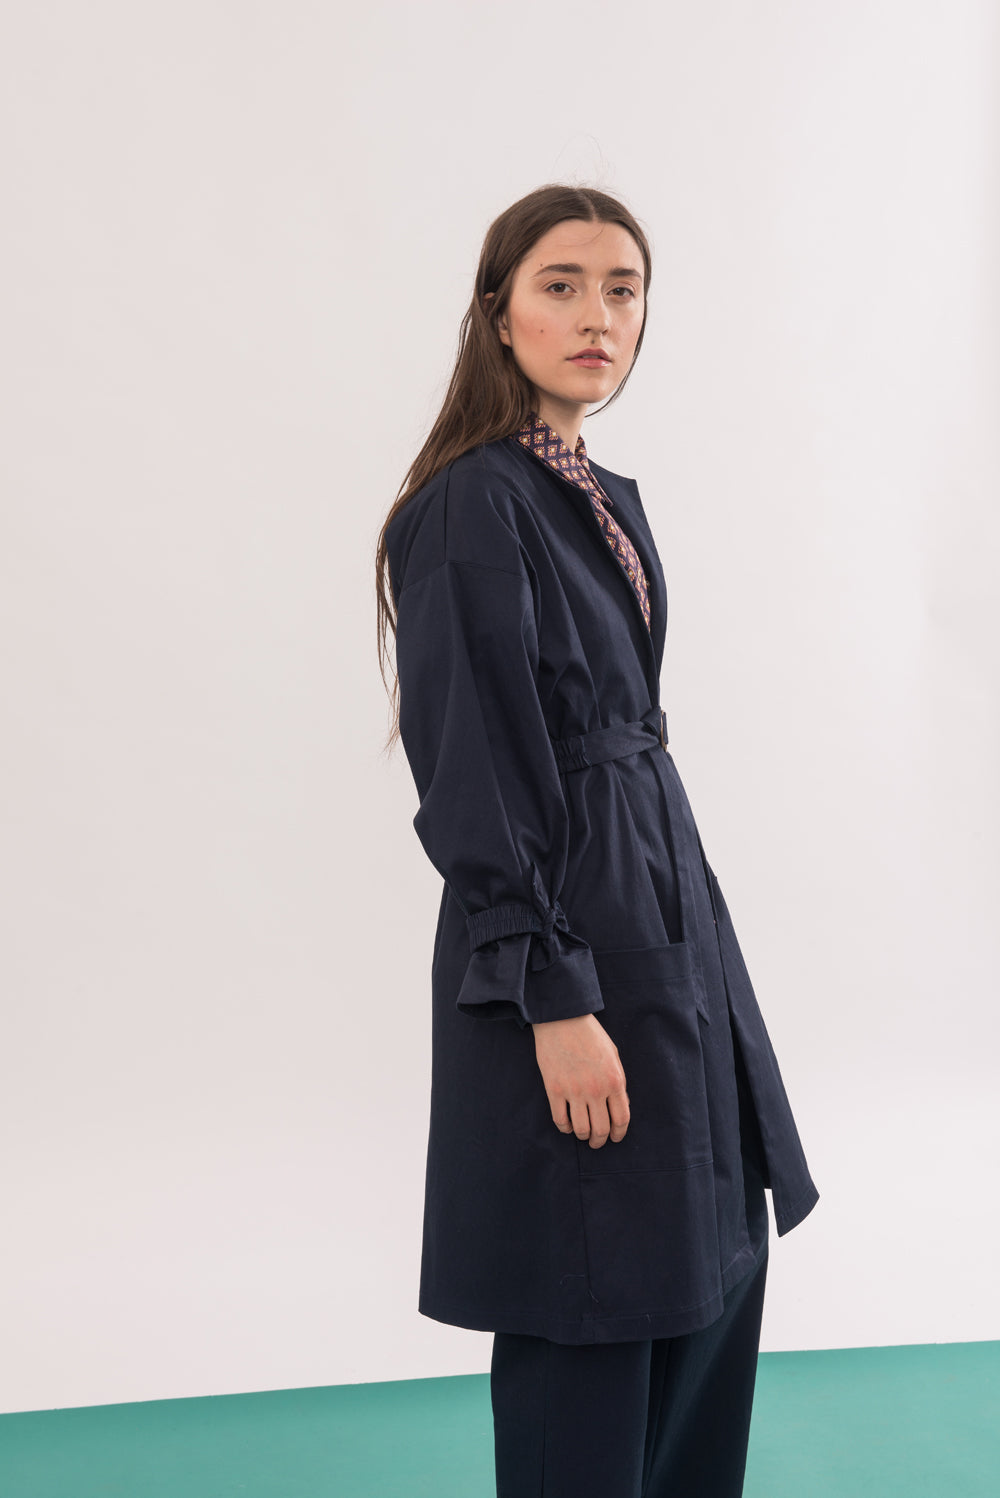 Arbus Jacket by Jennifer Glasgow, Navy, knee-length, broad collar, cinched cuffs, removable belt, eco fabric, OEKO-TEX Standard 100, sizes XS to XL, made in Montreal